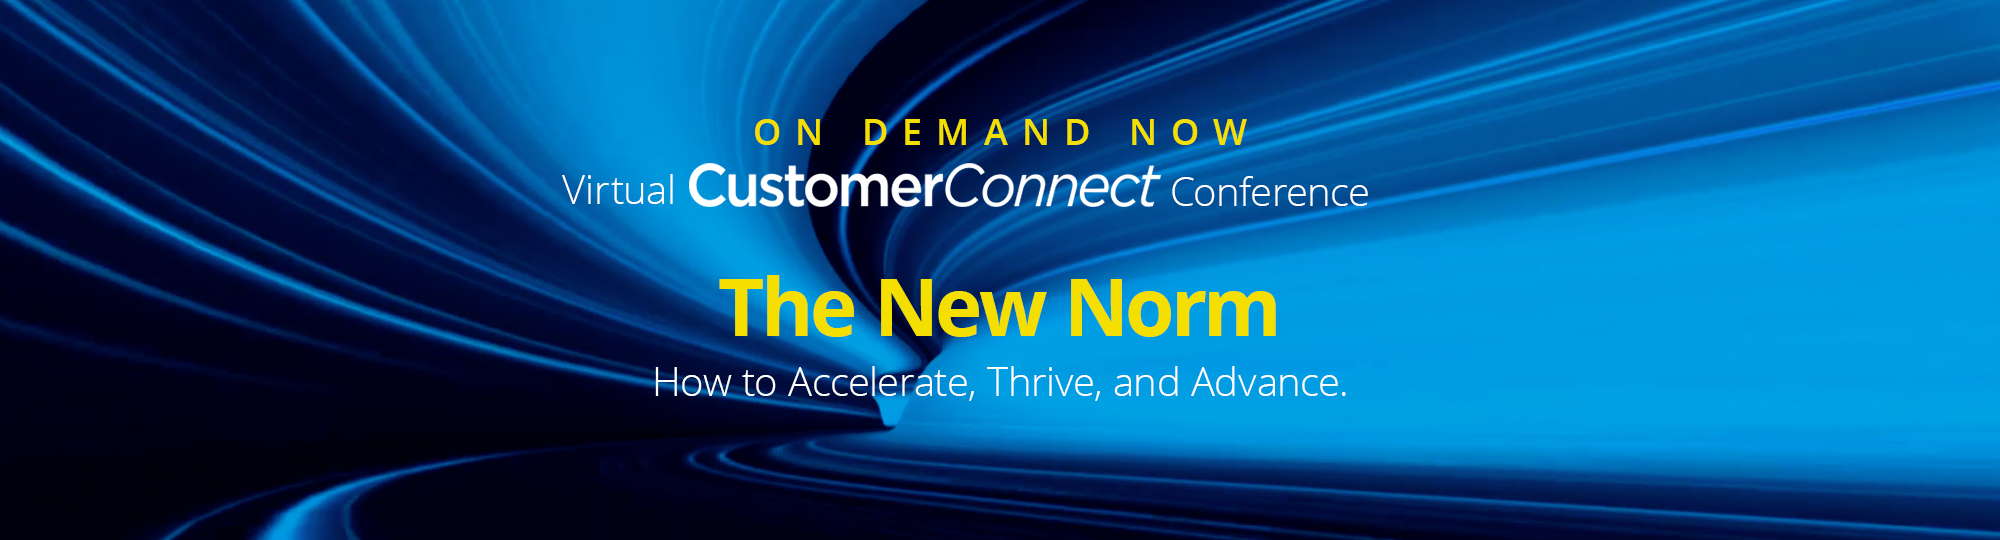 Zones CustomerConnect Virtual Conference on Sept 15, 2020: The New Norm